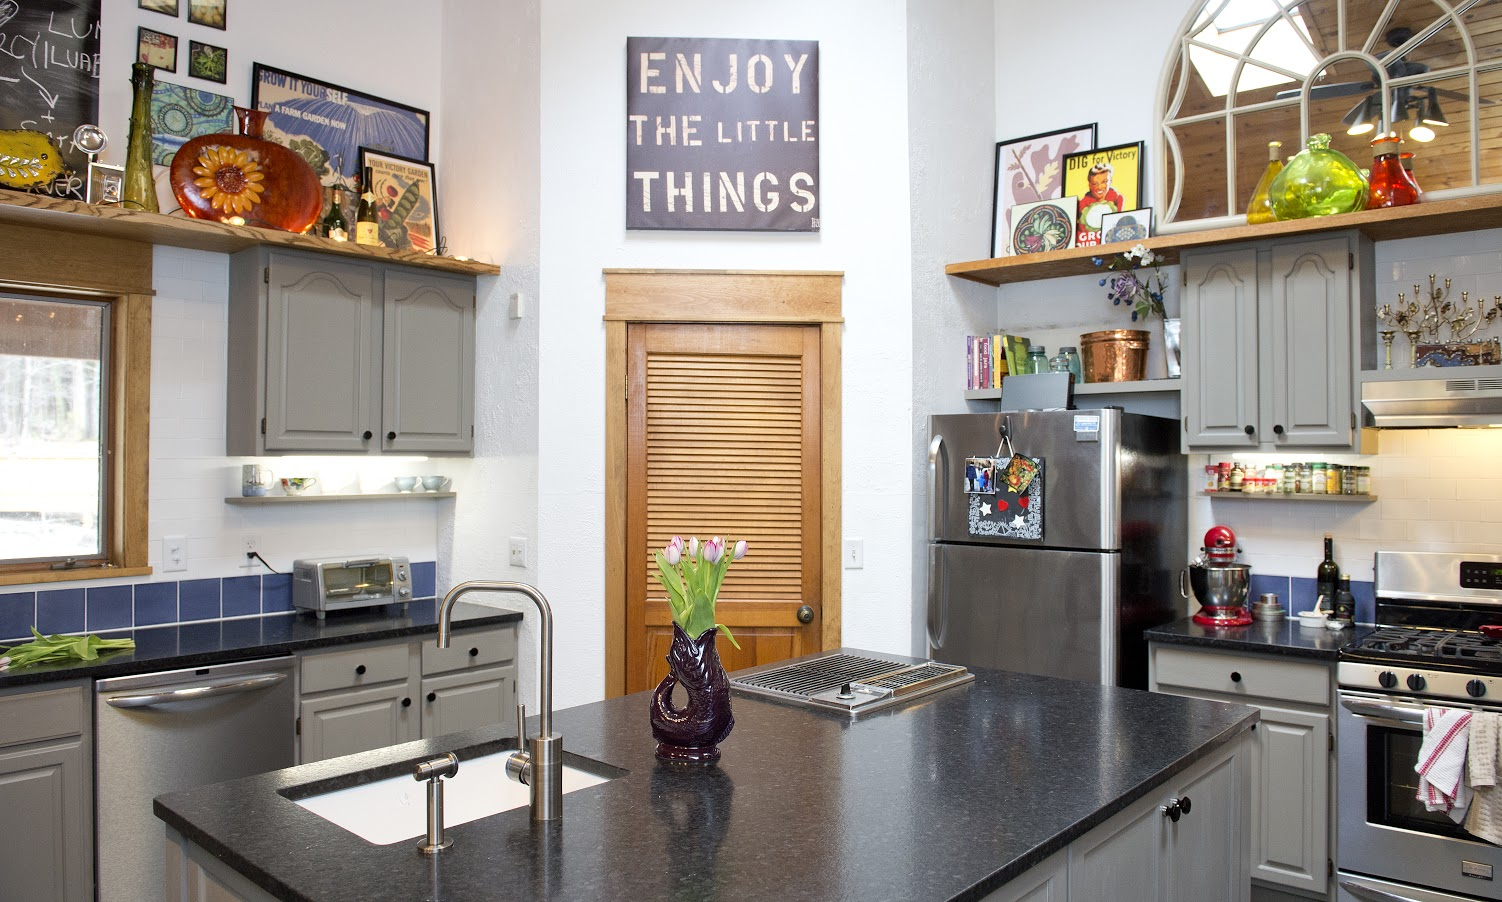 This upcycled kitchen uses a combination of all things sustainable, from updating the existing cabinetry, and salvaging the grill in the island, to bringing in high quality plumbing and tiles made from recycled materials.